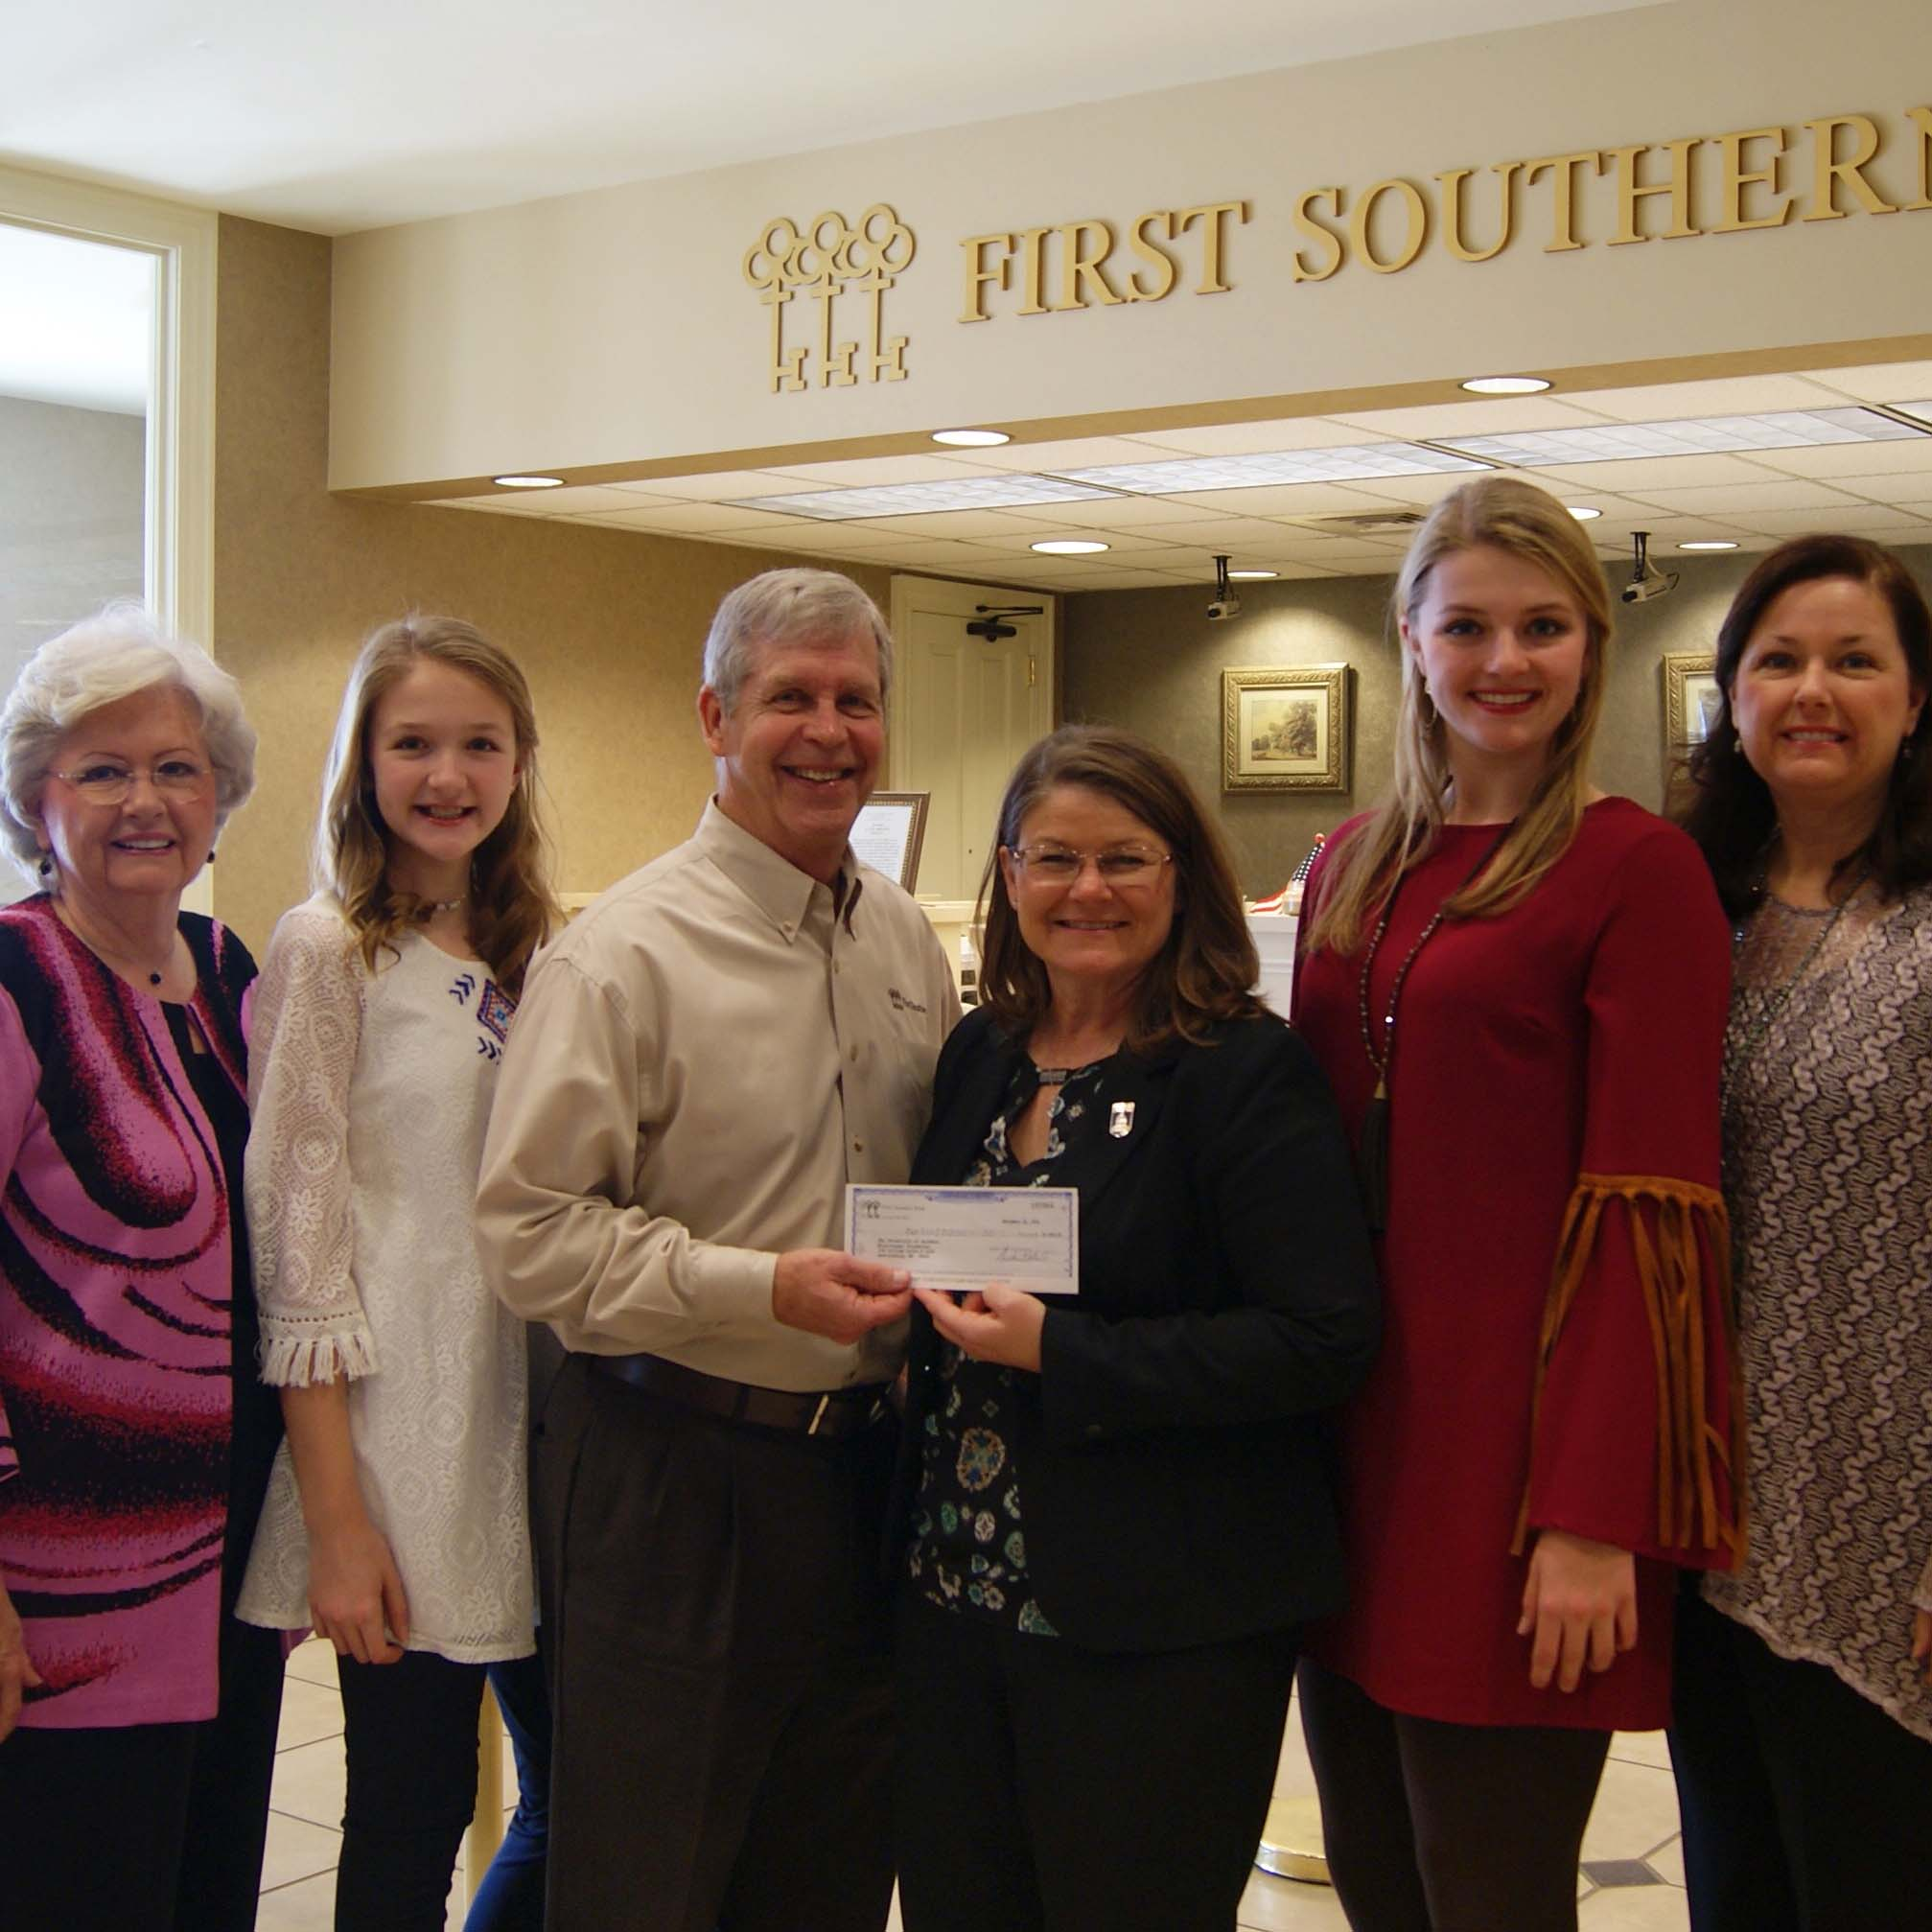 First Southern Bank Continues Commitment to Scholarship at Southern Miss